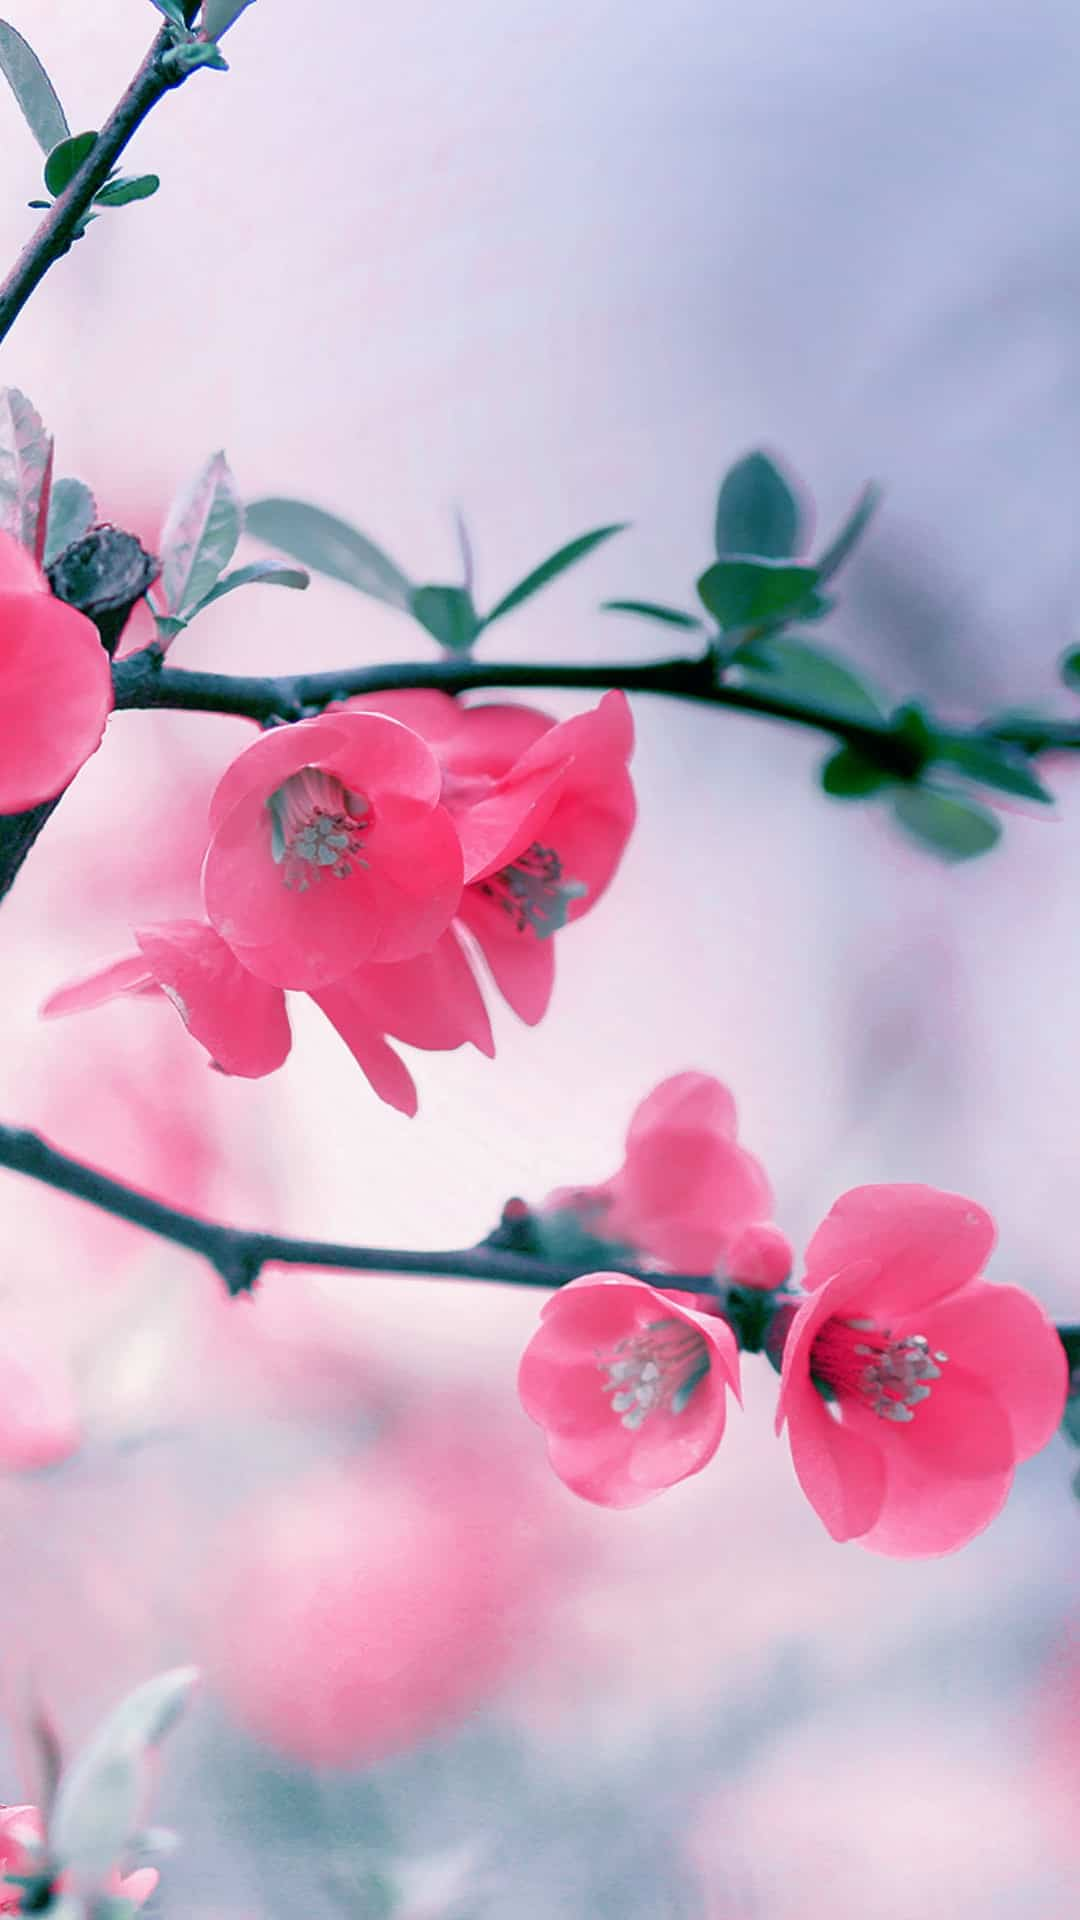 Vintage Pink Blossom Flowers Spring Macro Android Wallpaper